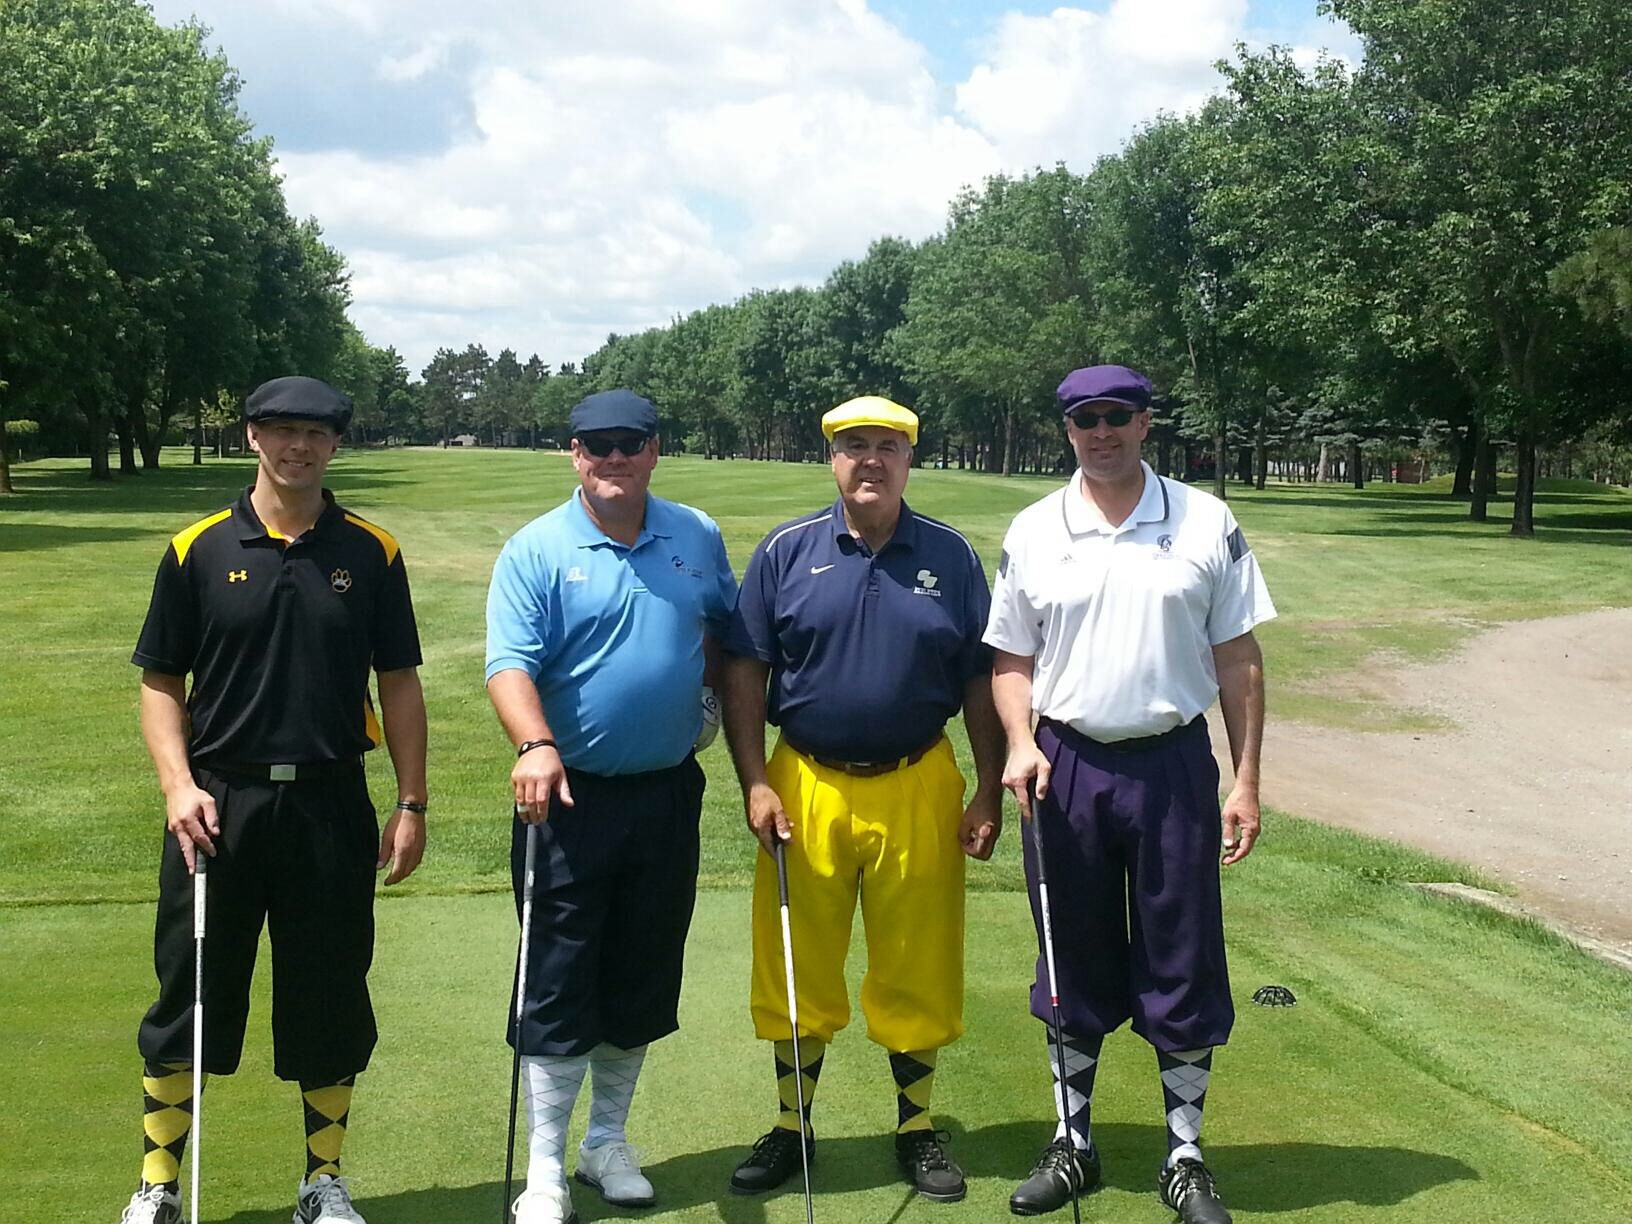 My Foursome At The Nsic Golf Tournament July 2014 Mike Powicki David Miller And Eric Schoh Golf Tournament David Miller Athlete